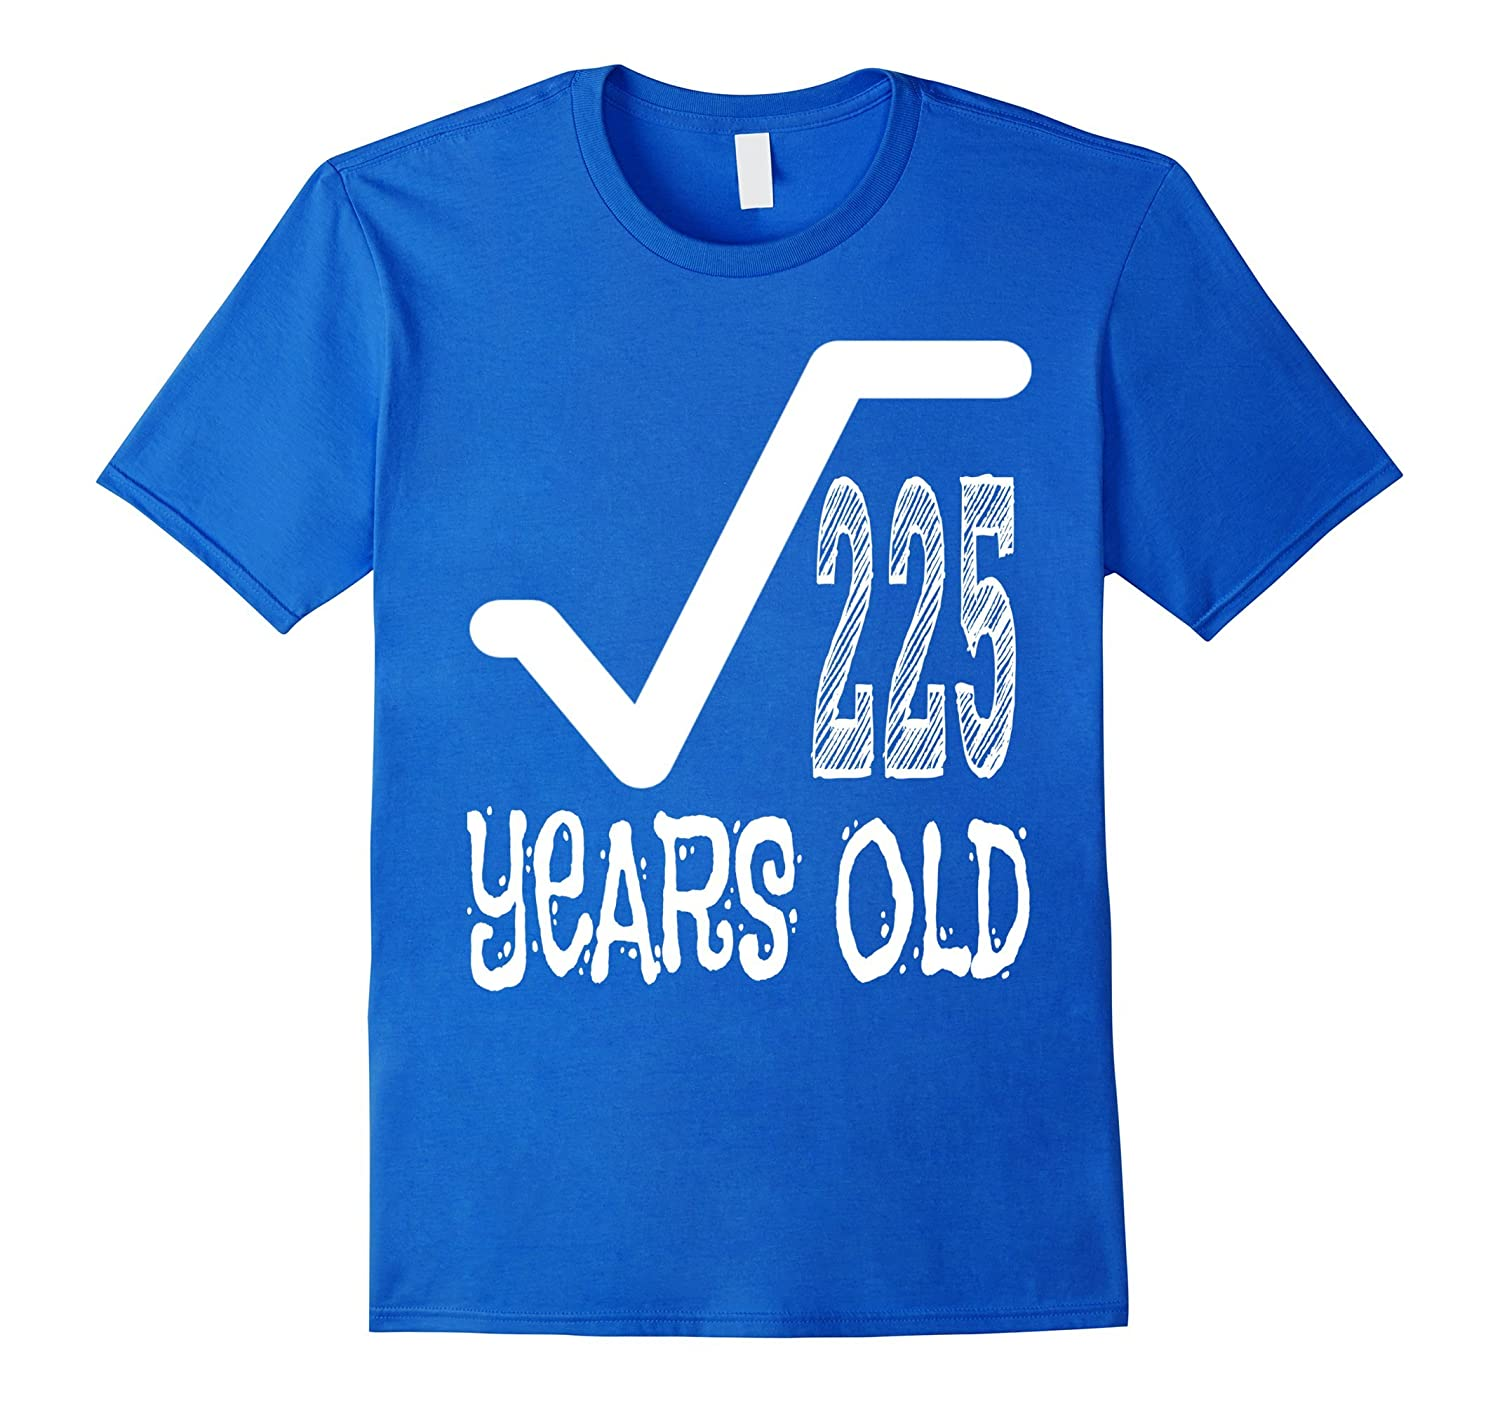 15 Year Old 15th Birthday Boy Girl Gift Dude Novelty T-Shirt-TJ